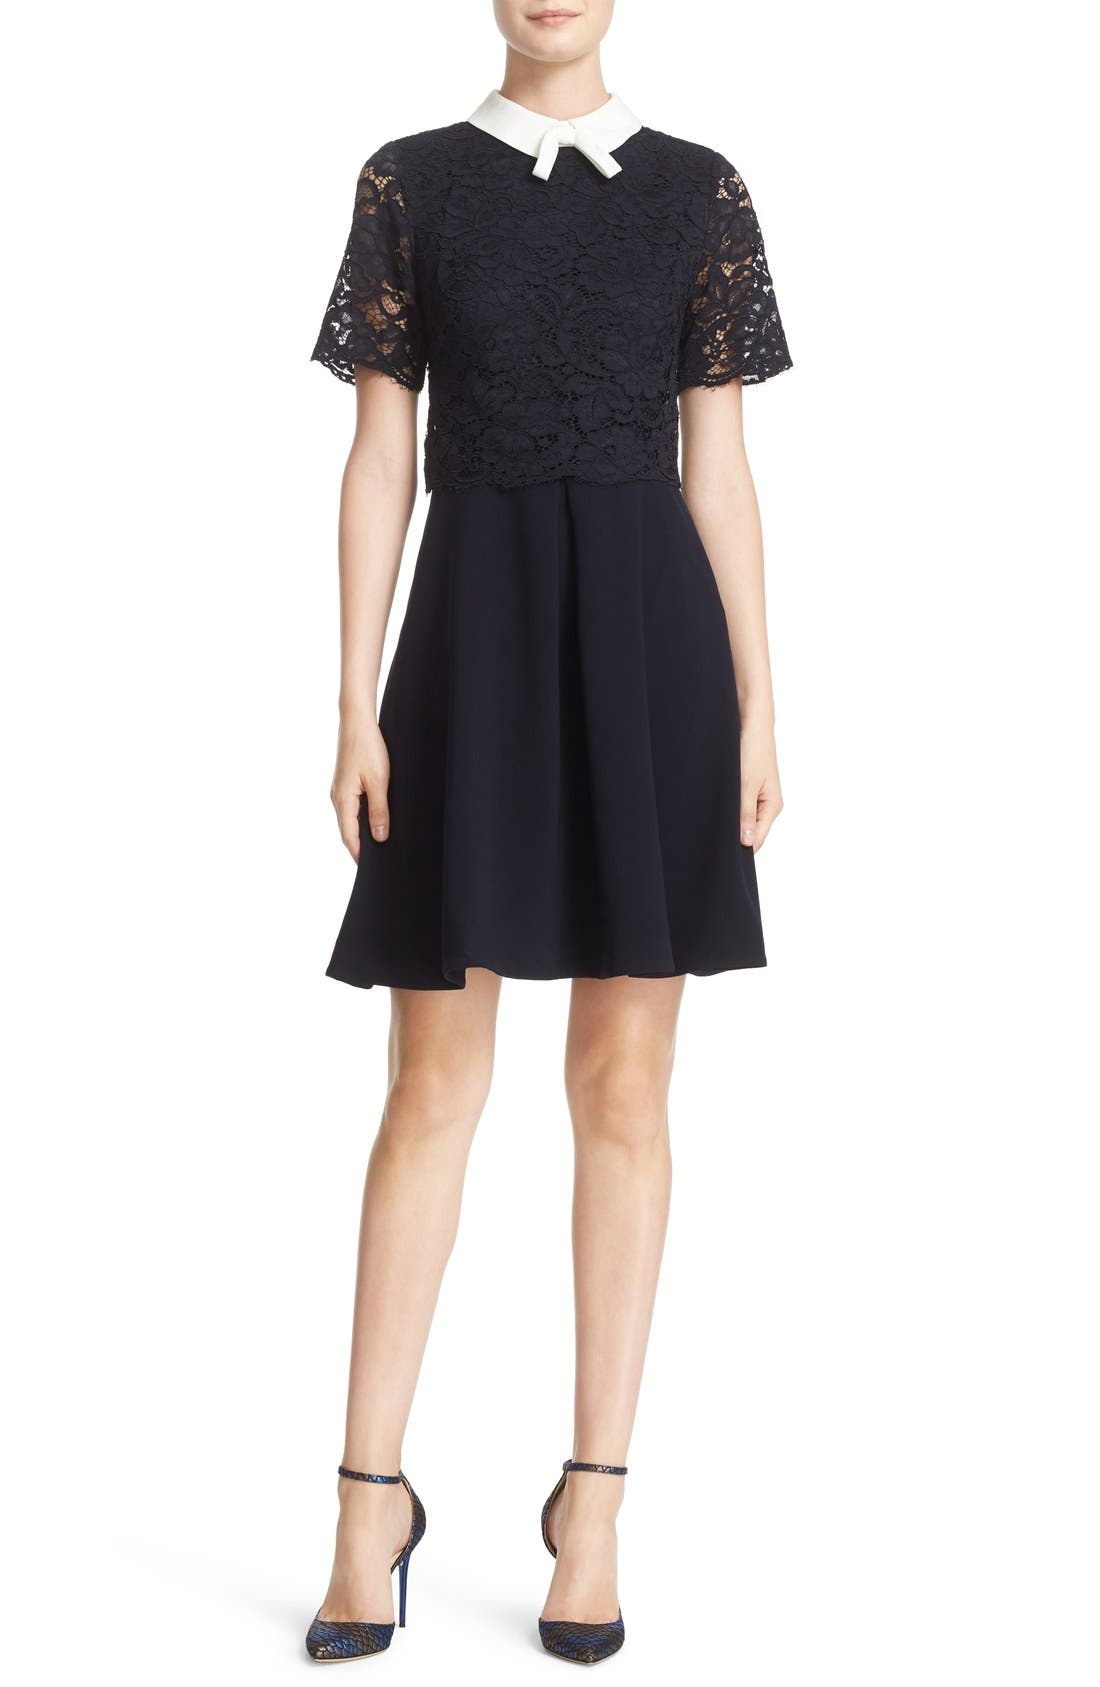 Alternate Image 1 Selected - Ted Baker London 'Dixxy' Contrast Trim Lace Bodice Fit & Flare Dress